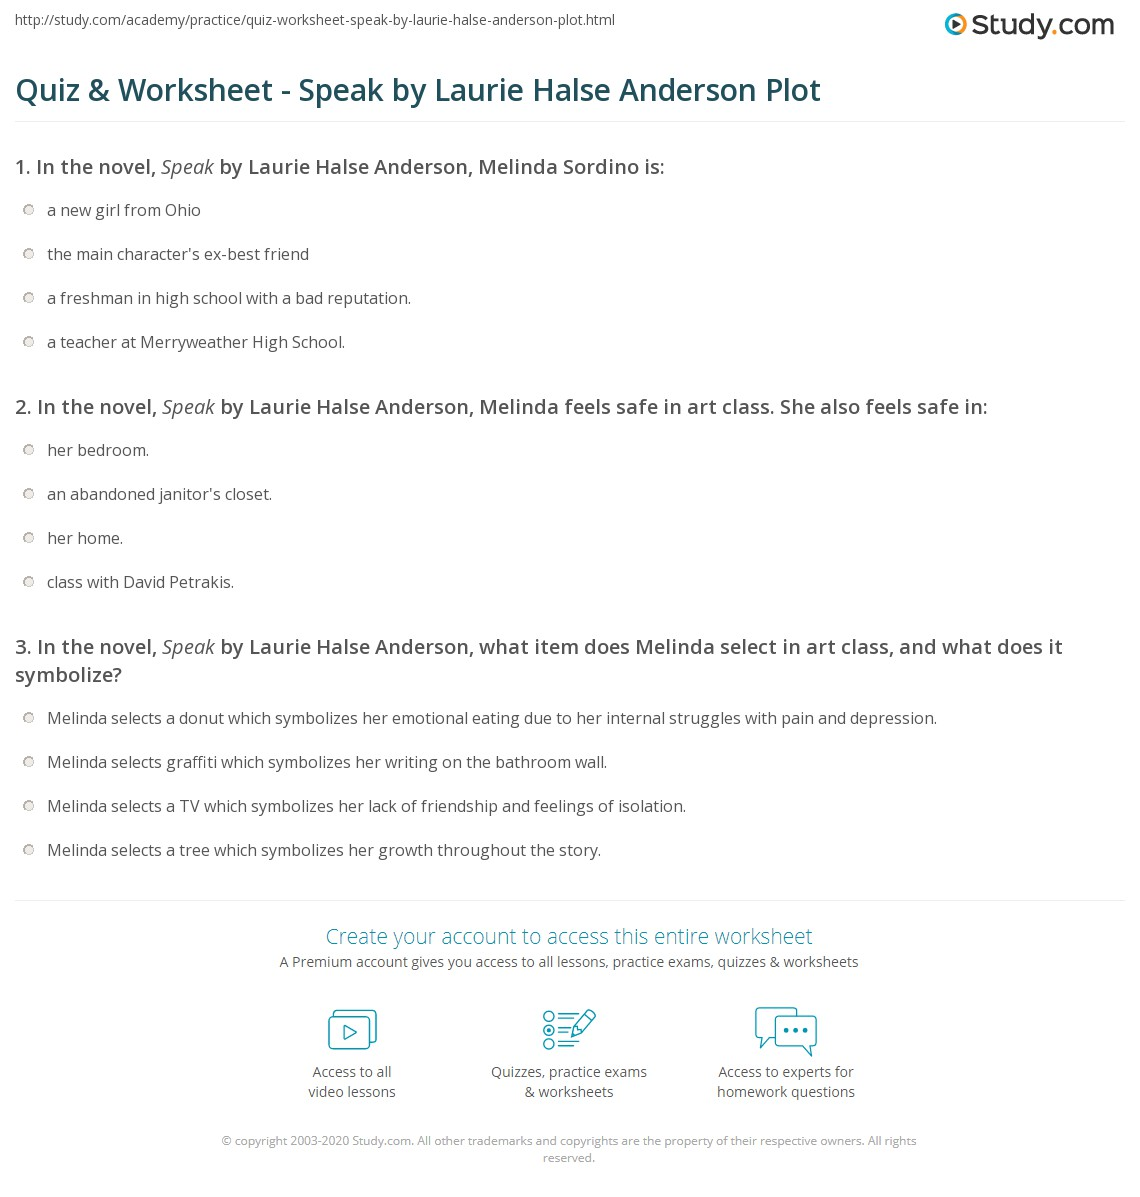 speak by laurie halse anderson essay prompts  speak by laurie halse anderson essay prompts